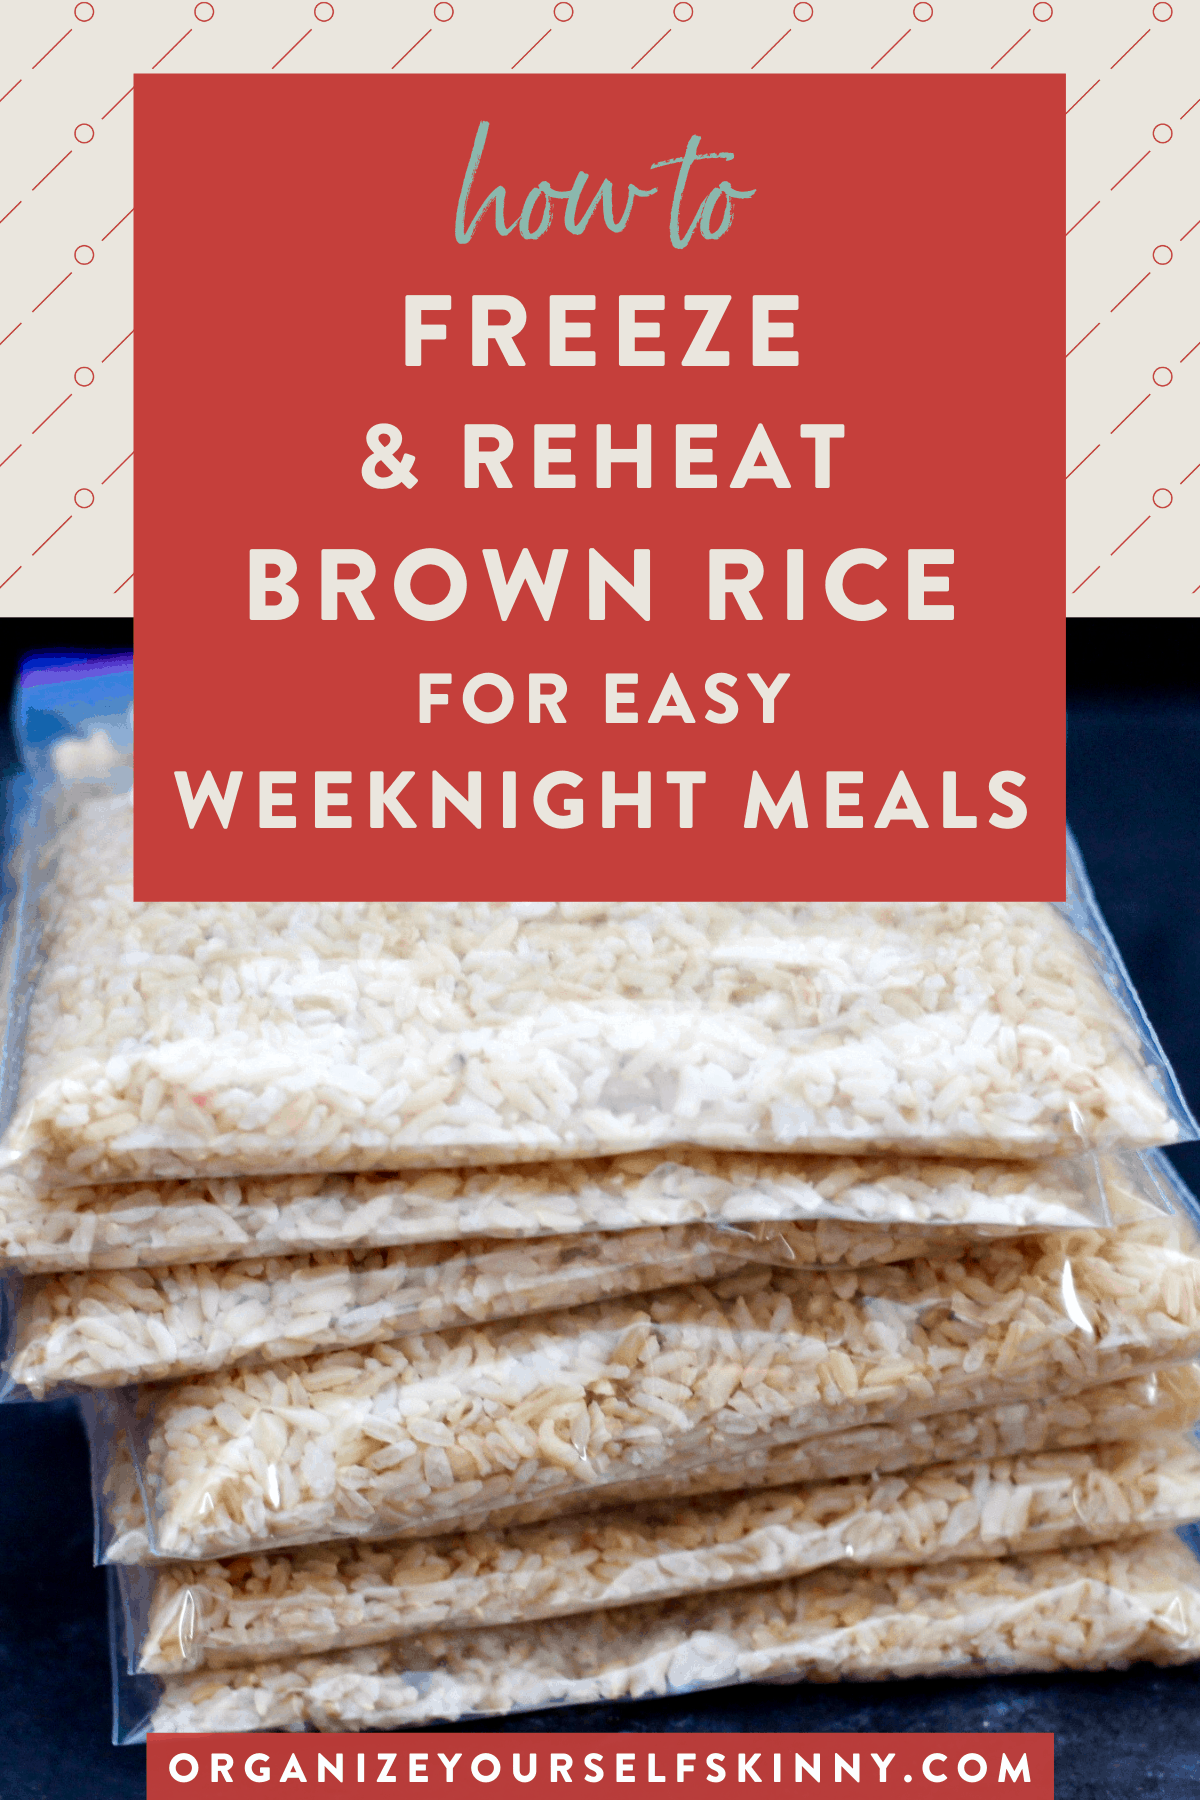 how-to-freeze-rehead-brown-rice-for-easy-weeknight-meals